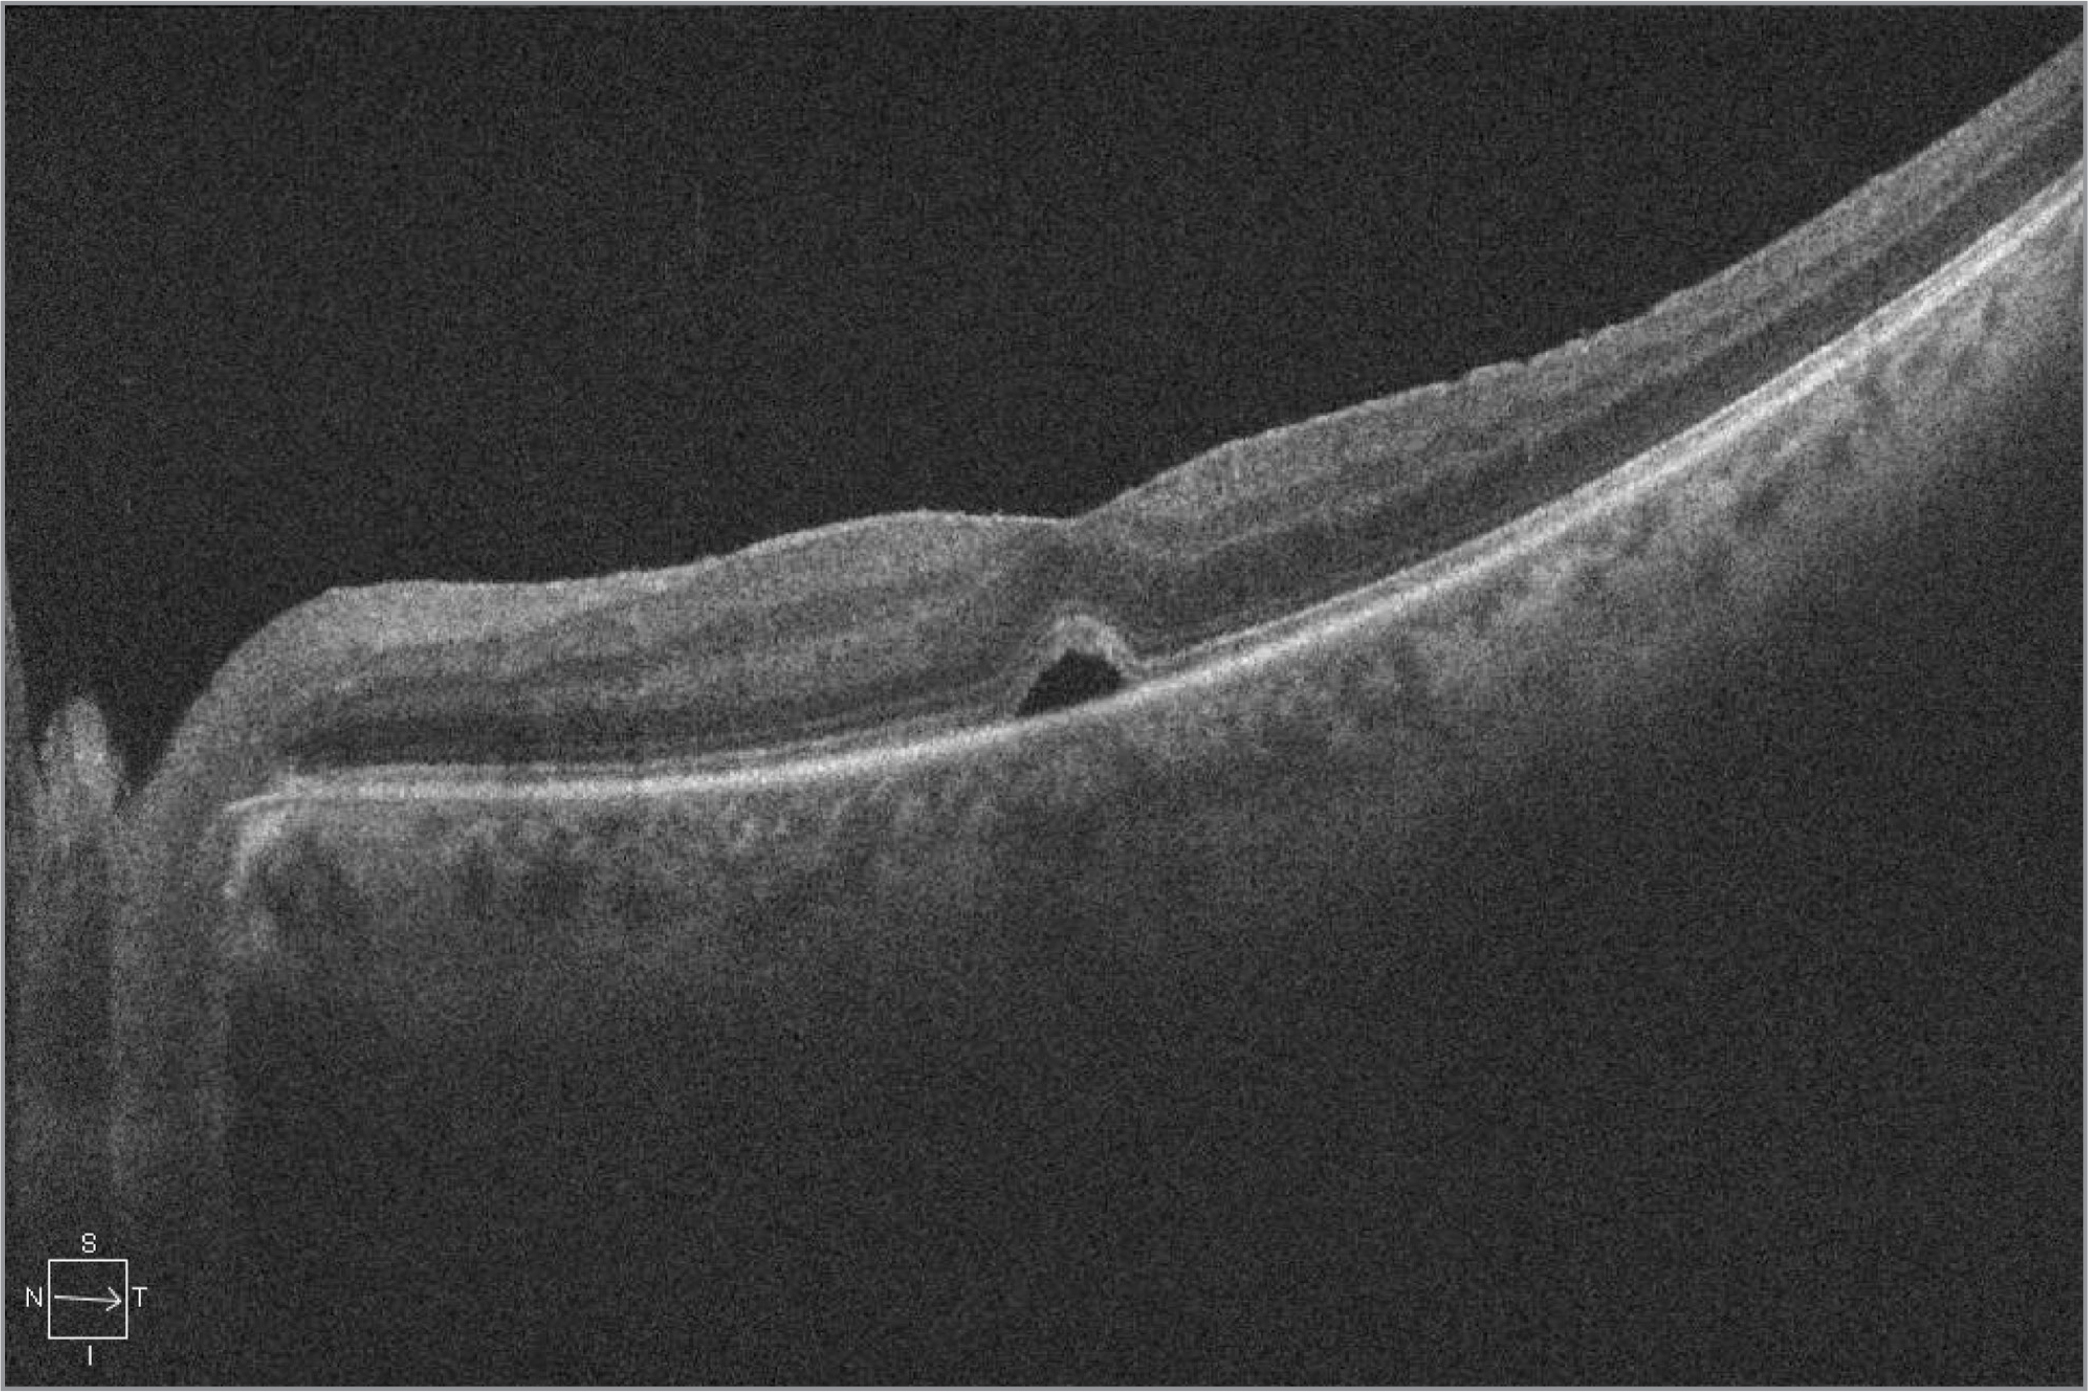 Spectral-domain optical coherence tomography demonstrating outer retinal defect following macular hole repair.